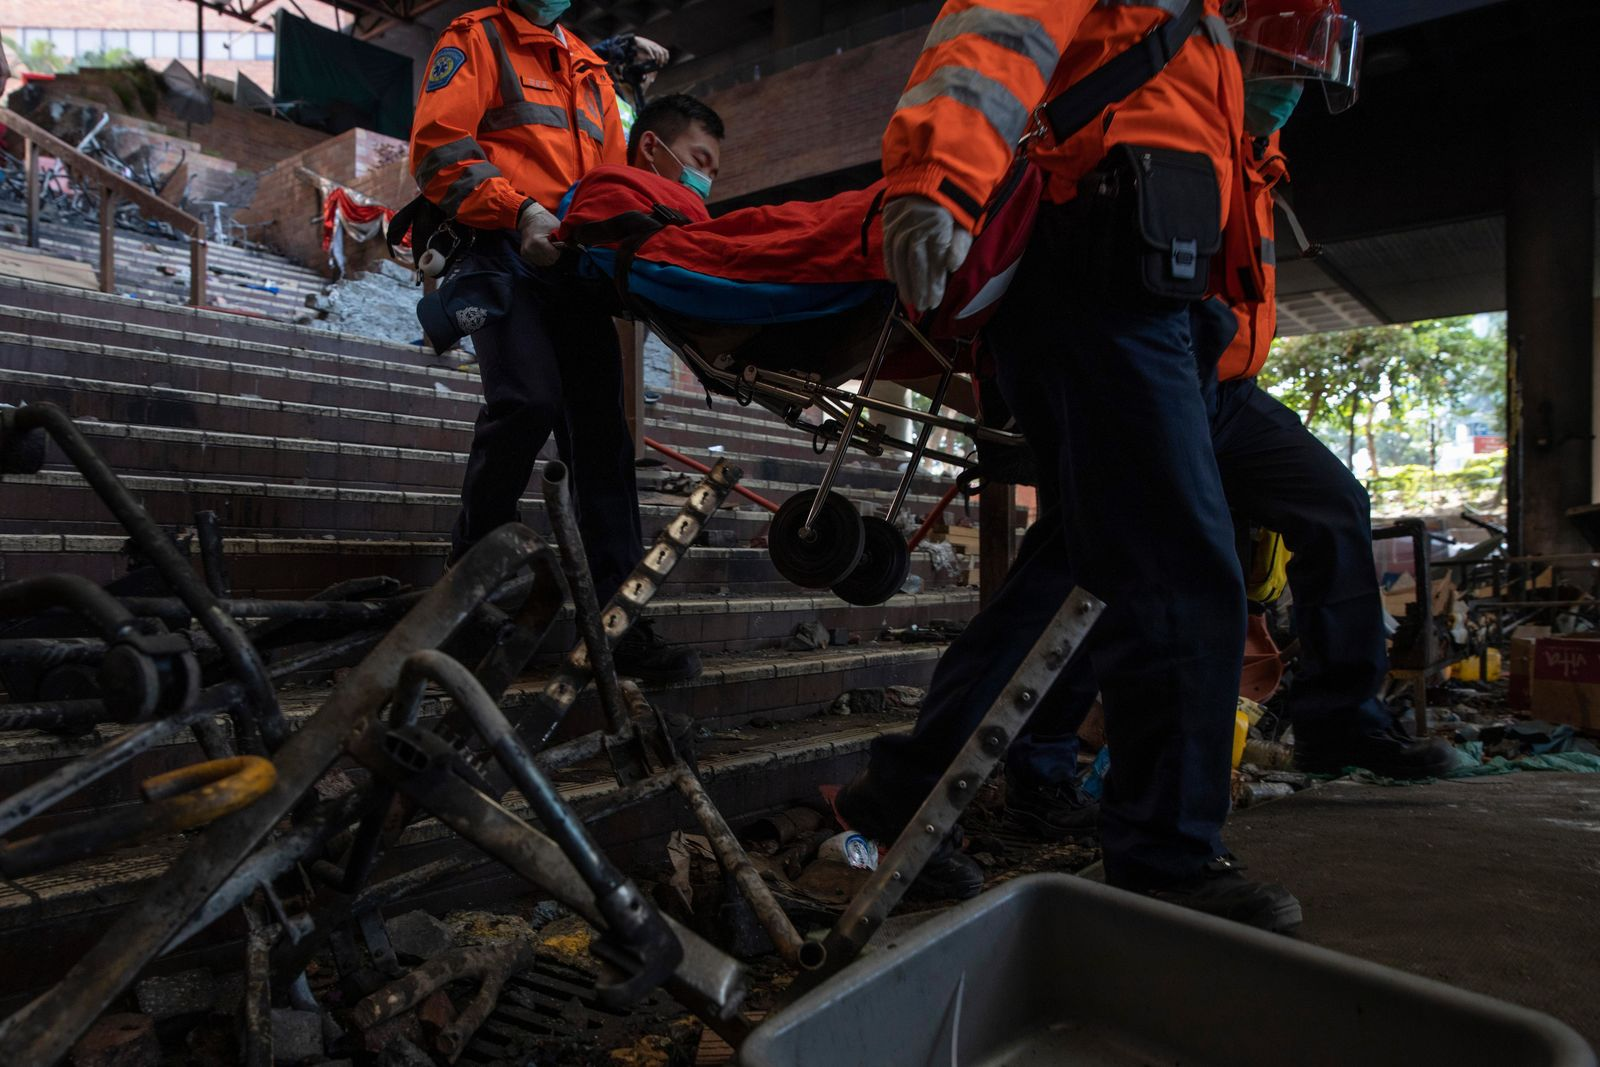 A man is evacuated by medics past charred debris from the Polytechnic University in Hong Kong on Wednesday, Nov. 20, 2019. (AP Photo/Ng Han Guan)